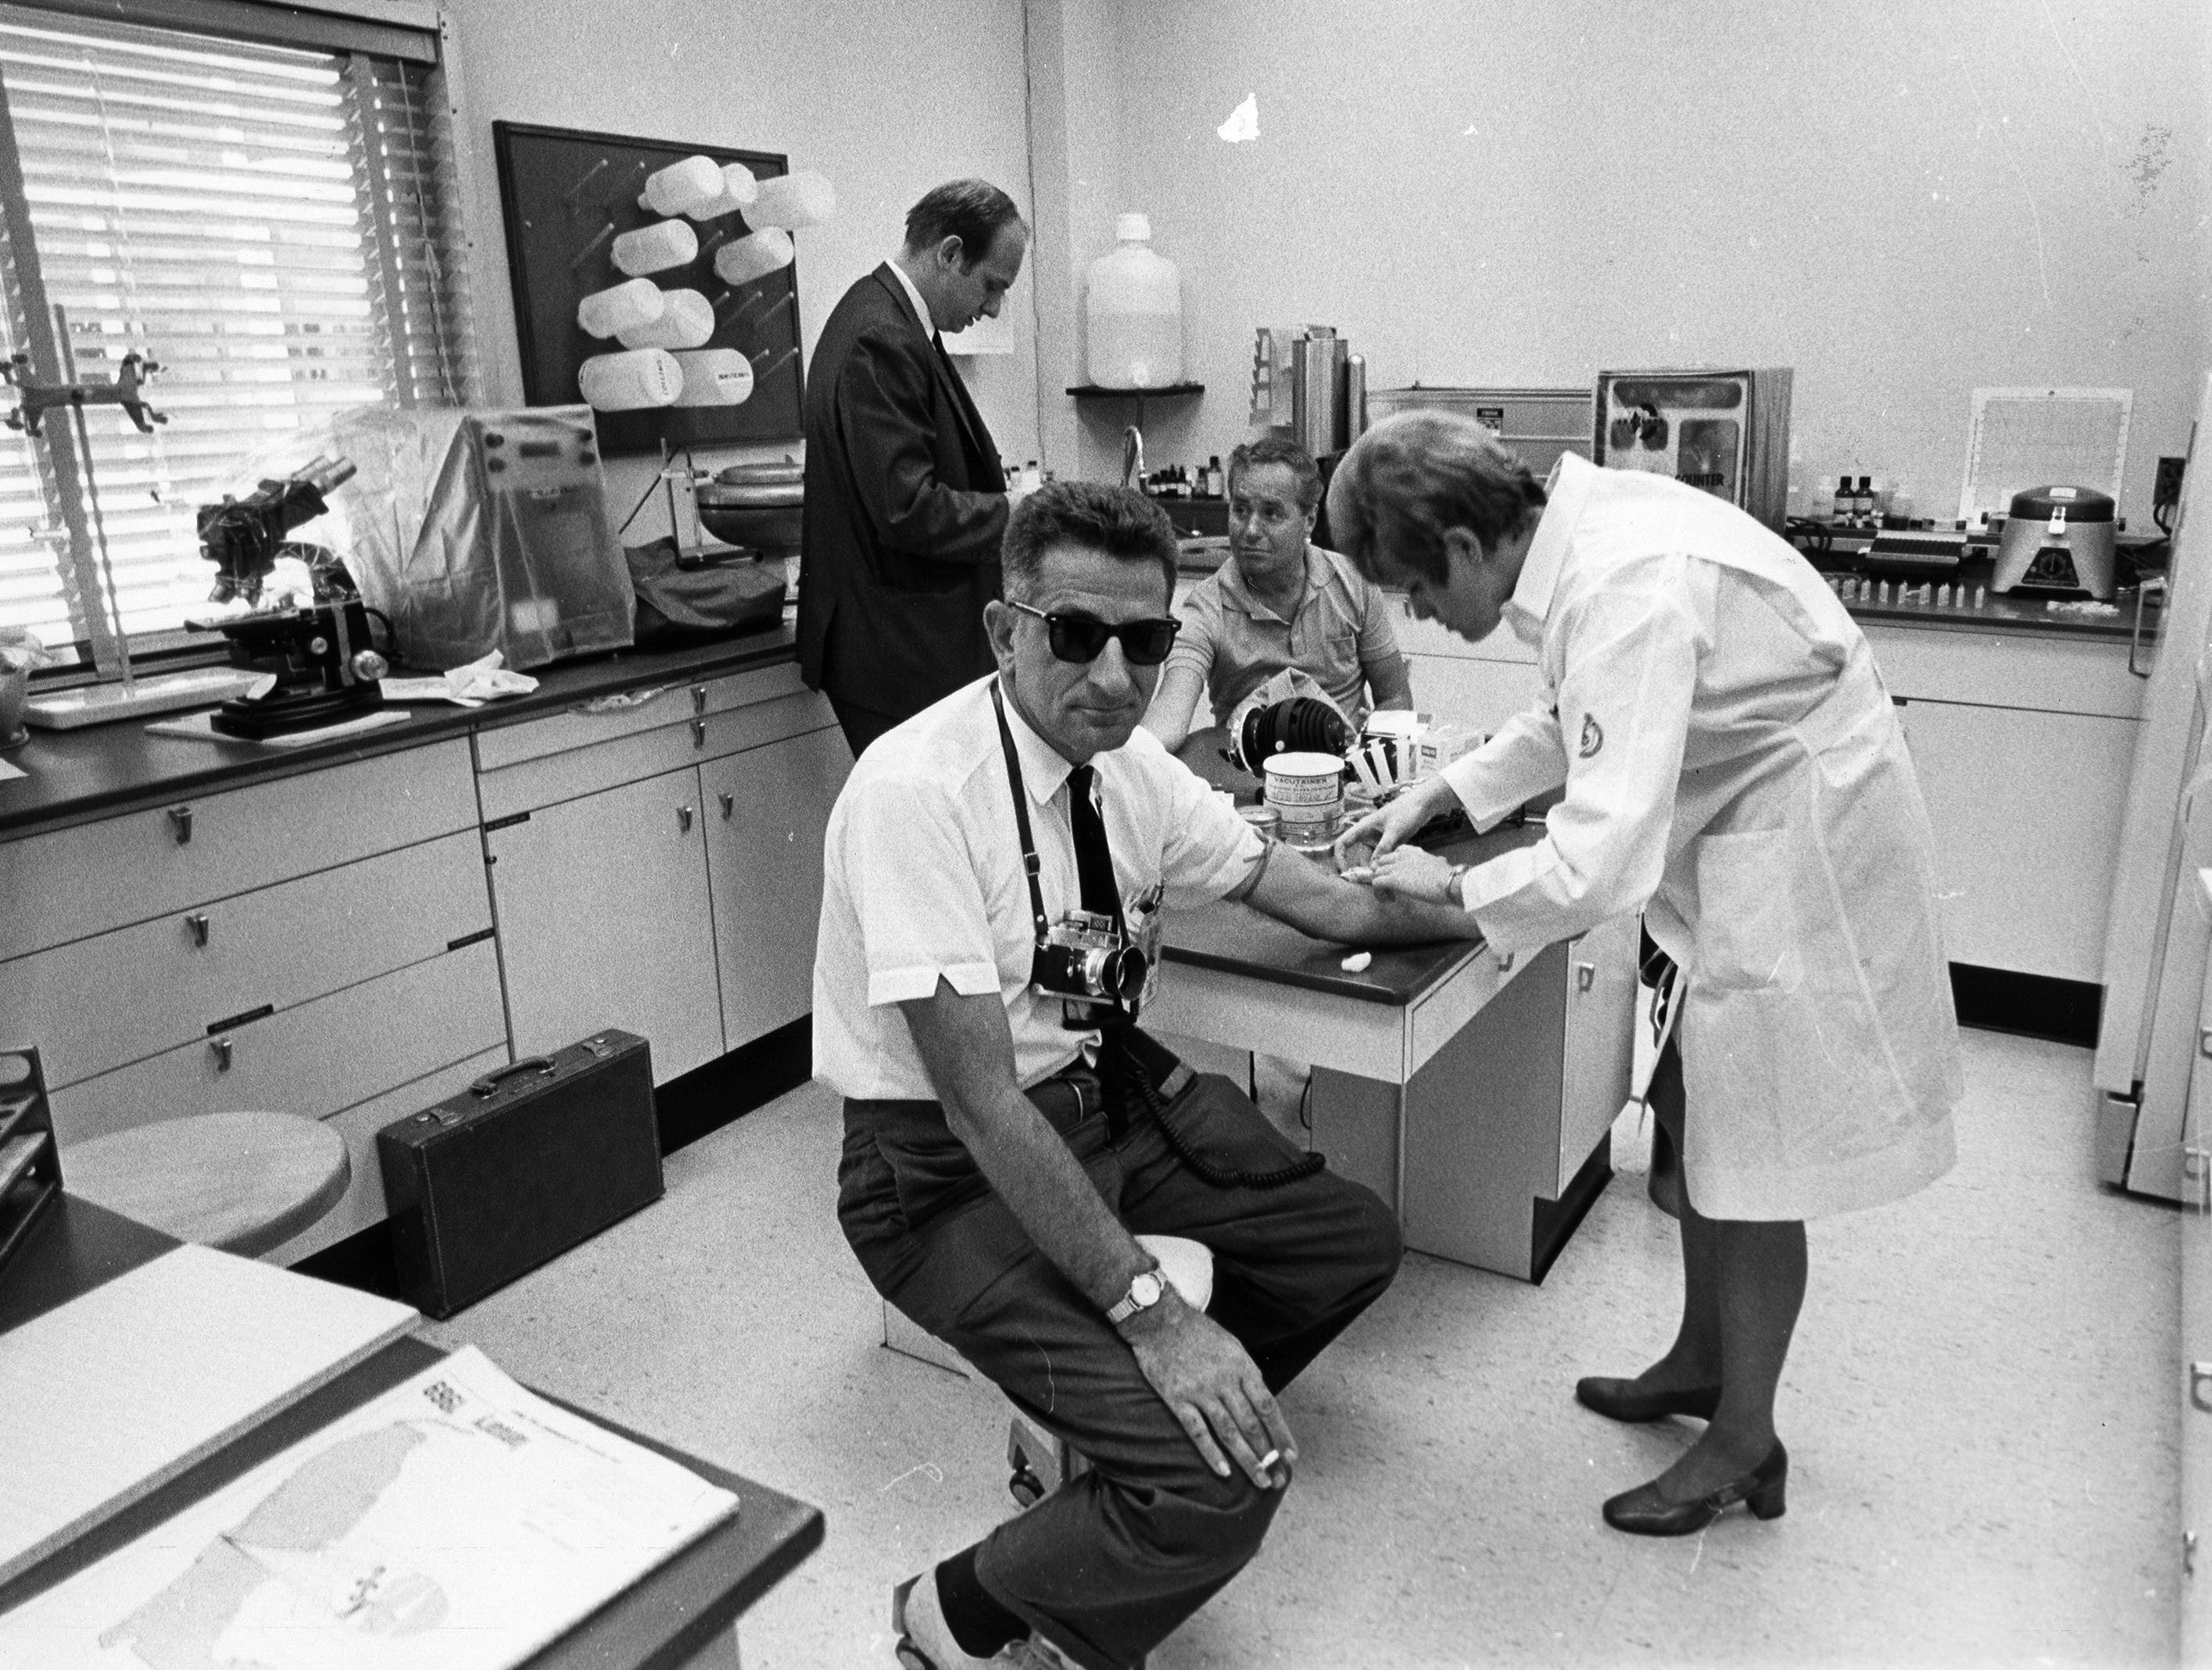 In keeping with the semi-quarantine for the Apollo 11 mission, NASA photographer Bill Taub having blood test prior to photographing the Apollo 11 crew - Neil A. Armstrong, Michael Collins and Edwin E. Aldrin, Jr. Administering the blood test in the Launch Site Medical Operations Laboratory is Cheryl Tuchman.